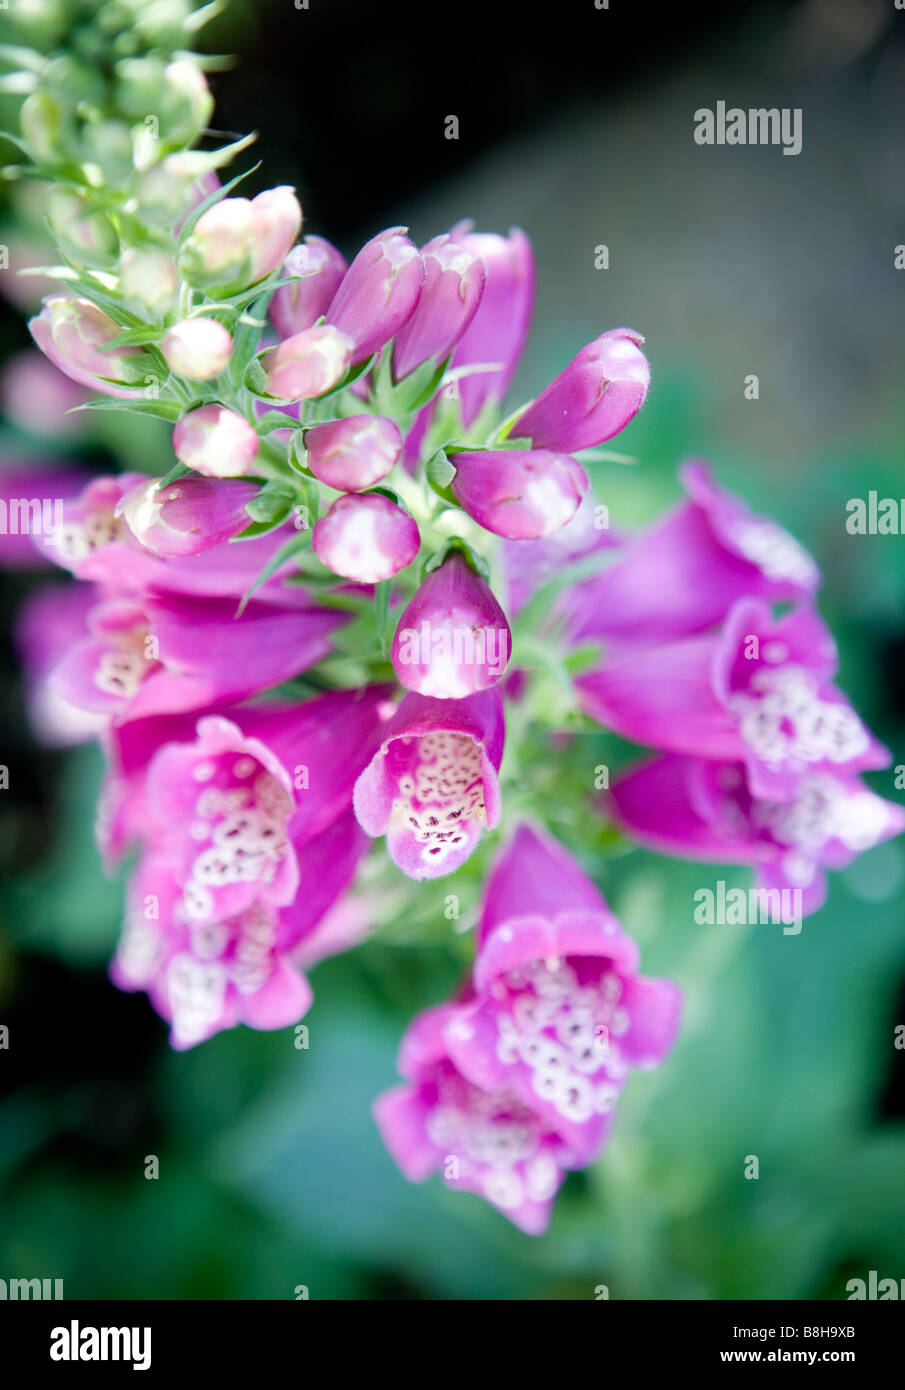 Common name: Foxglove Latin name: Digitalis - Stock Image